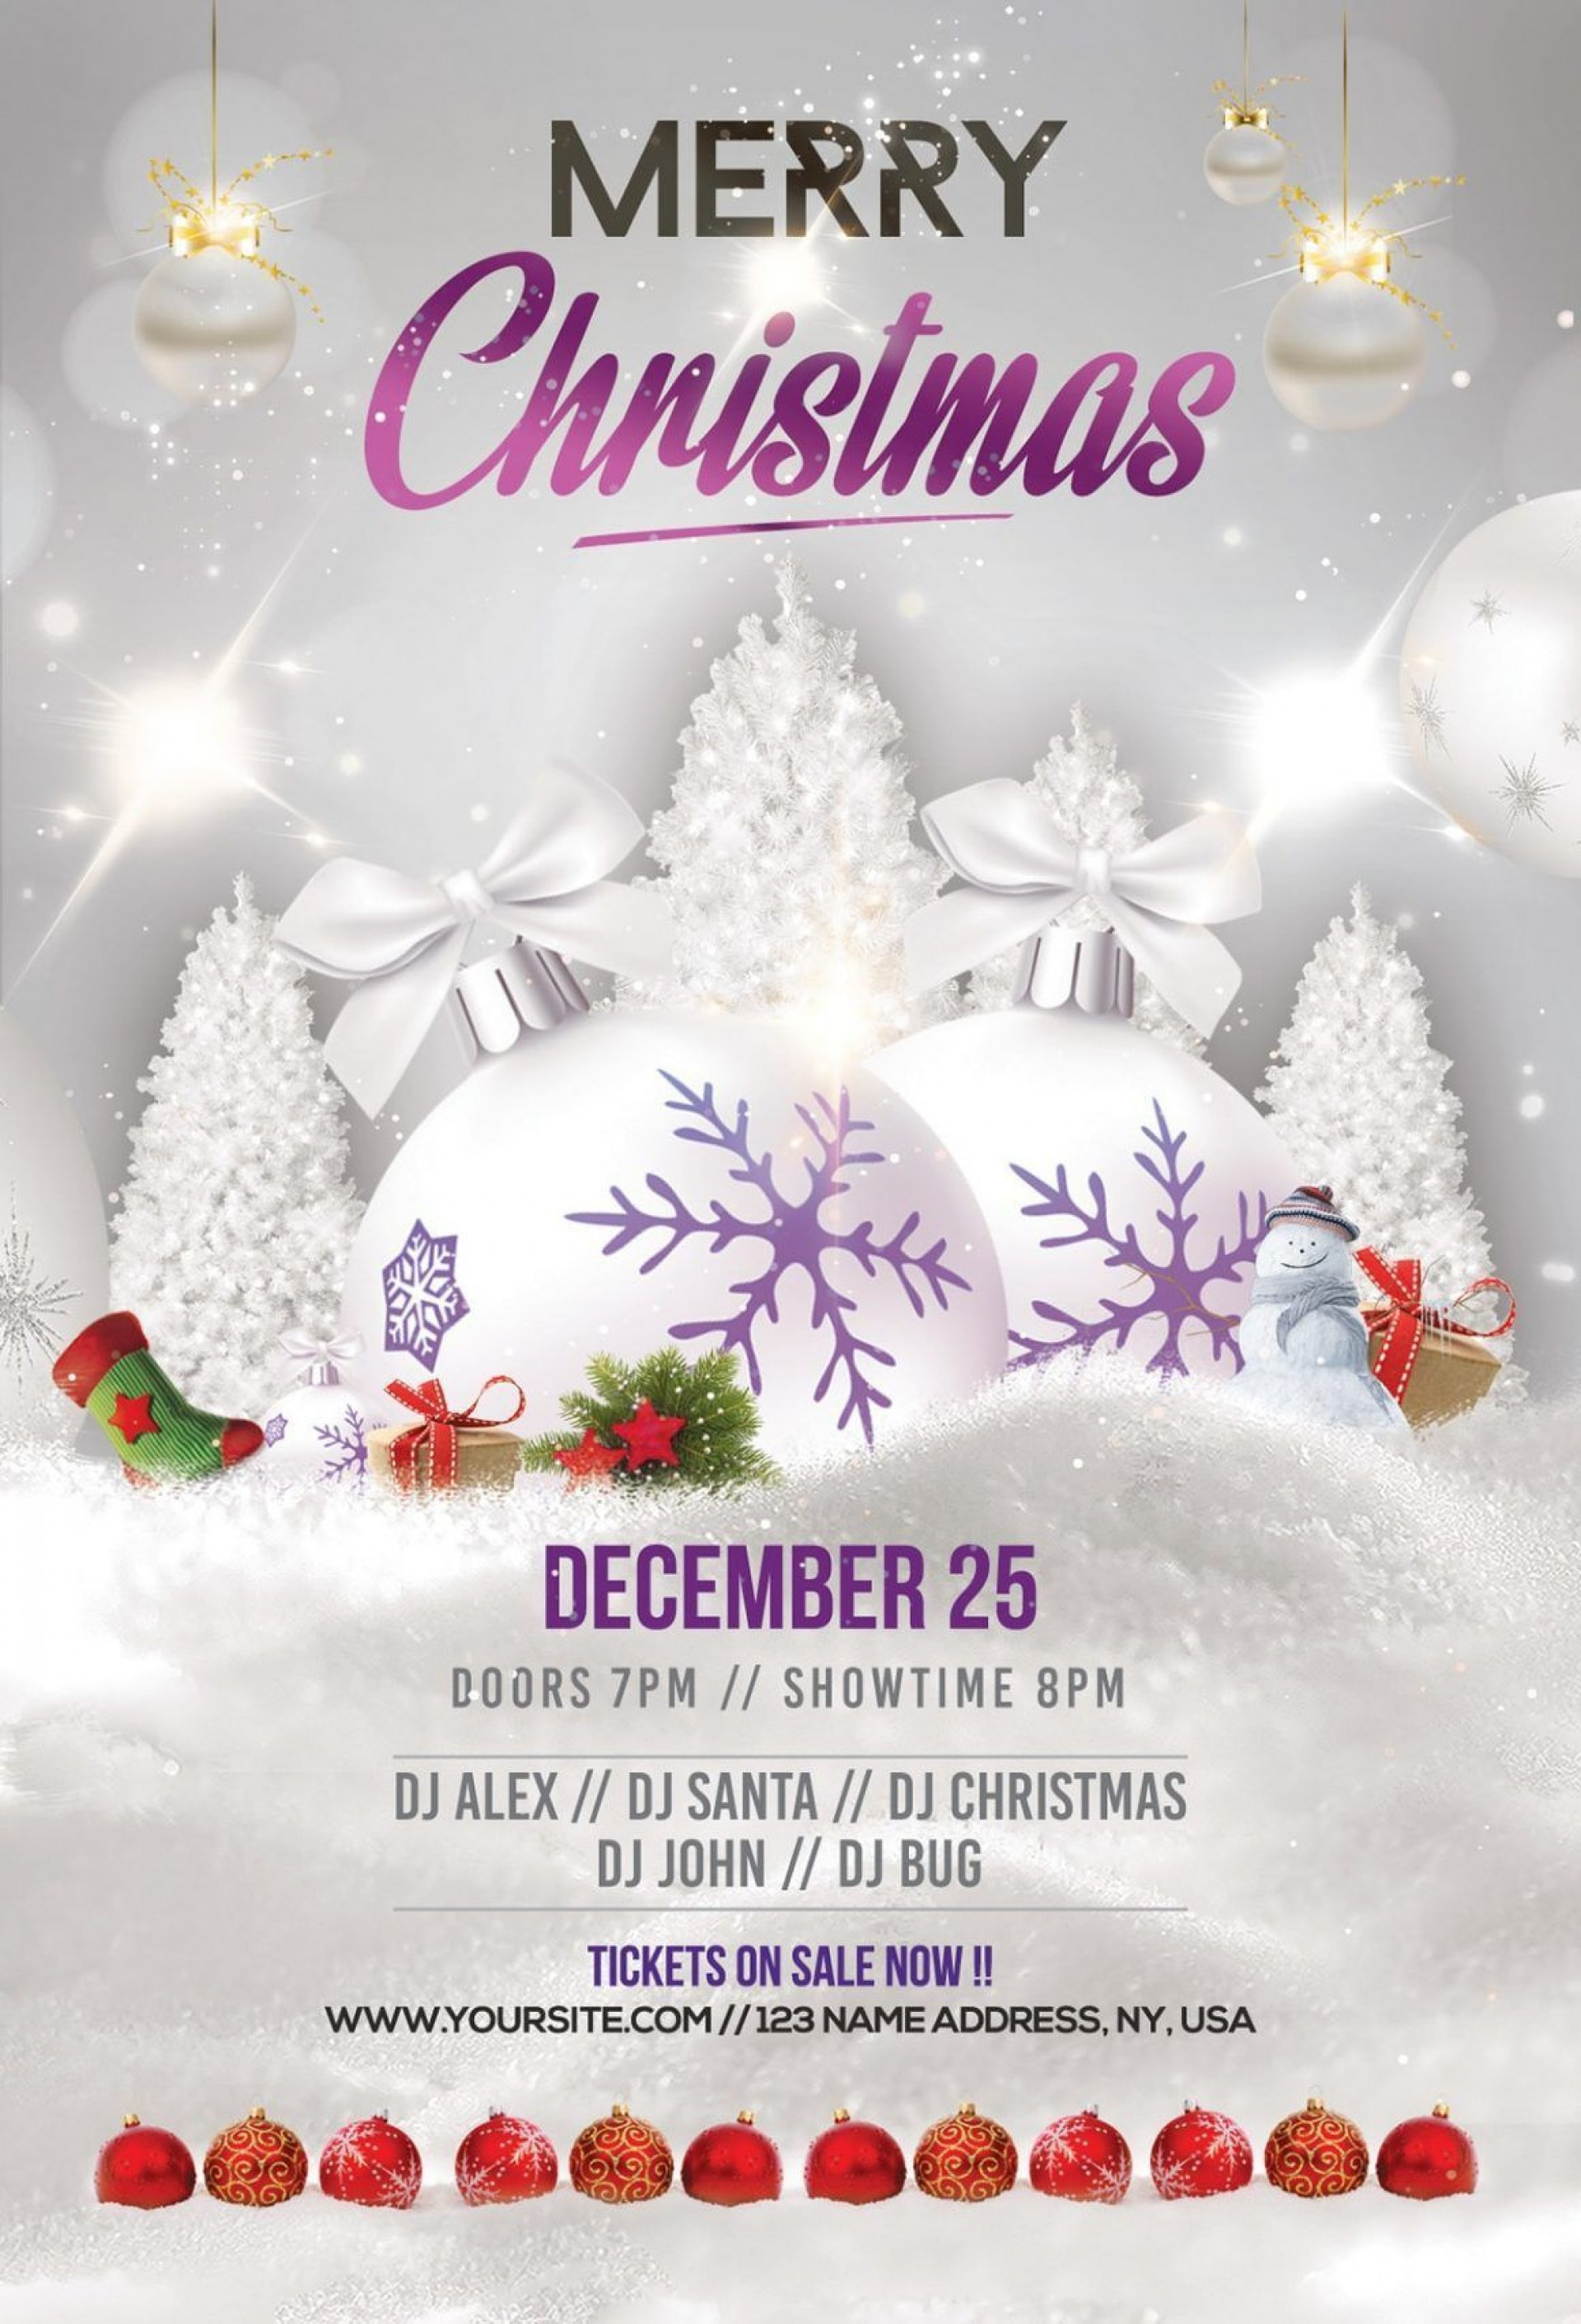 006 Unbelievable Christma Flyer Template Free Concept  Party Invitation Psd Download1920